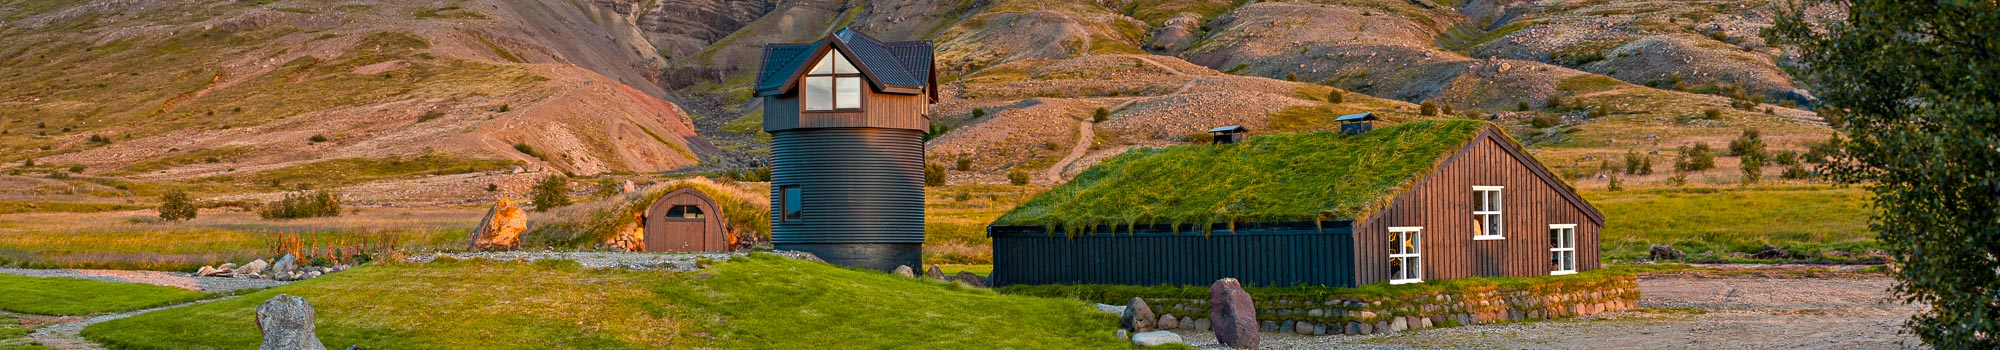 Turf house in Husafell in Iceland